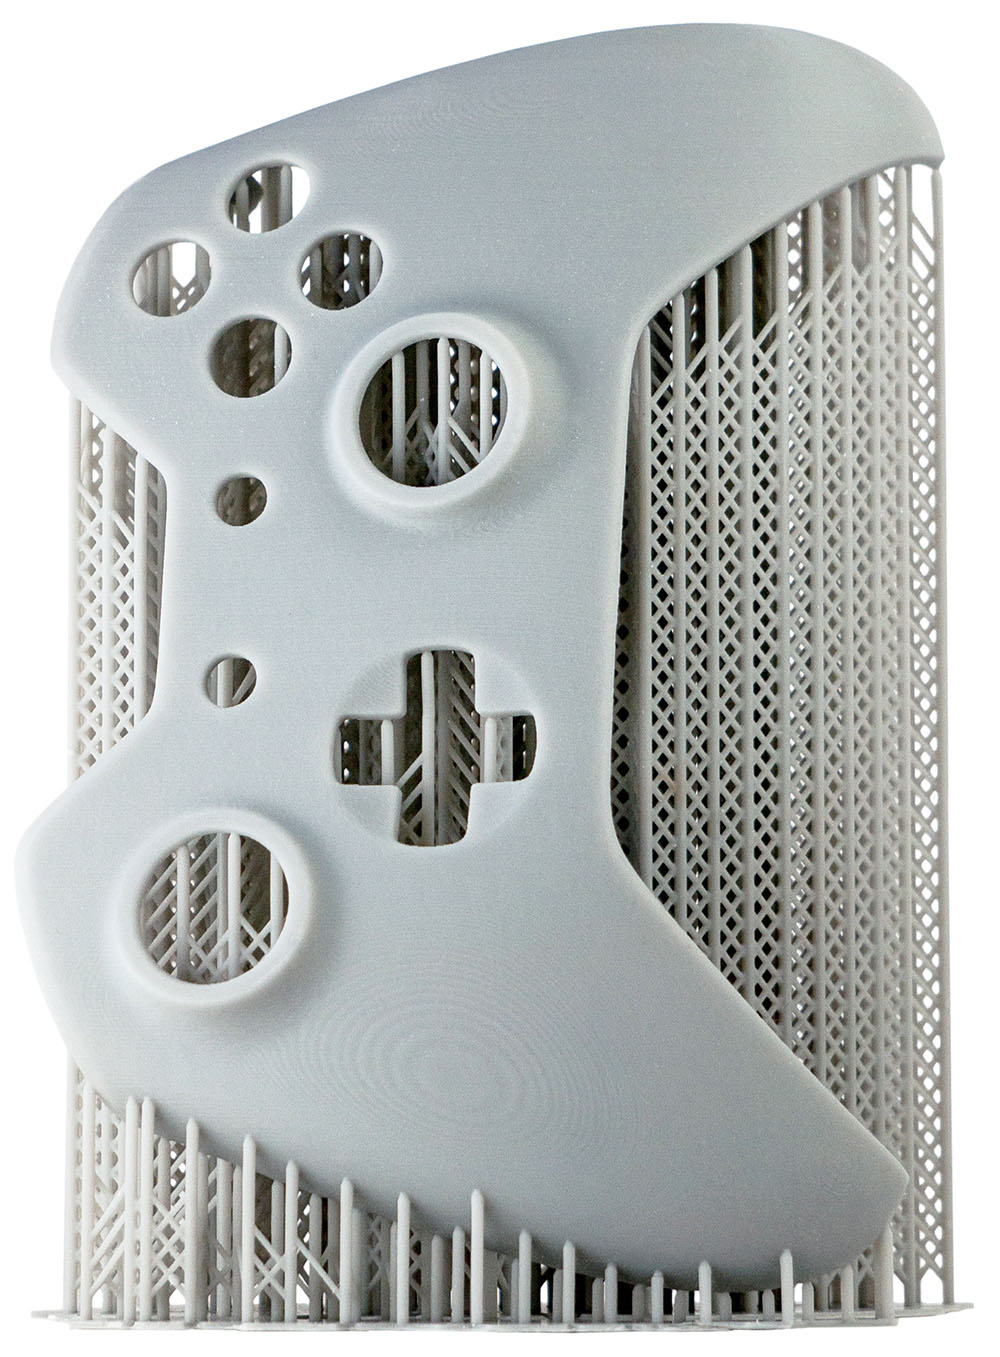 MoonRay_engineering_3dprinting_xbox_shell